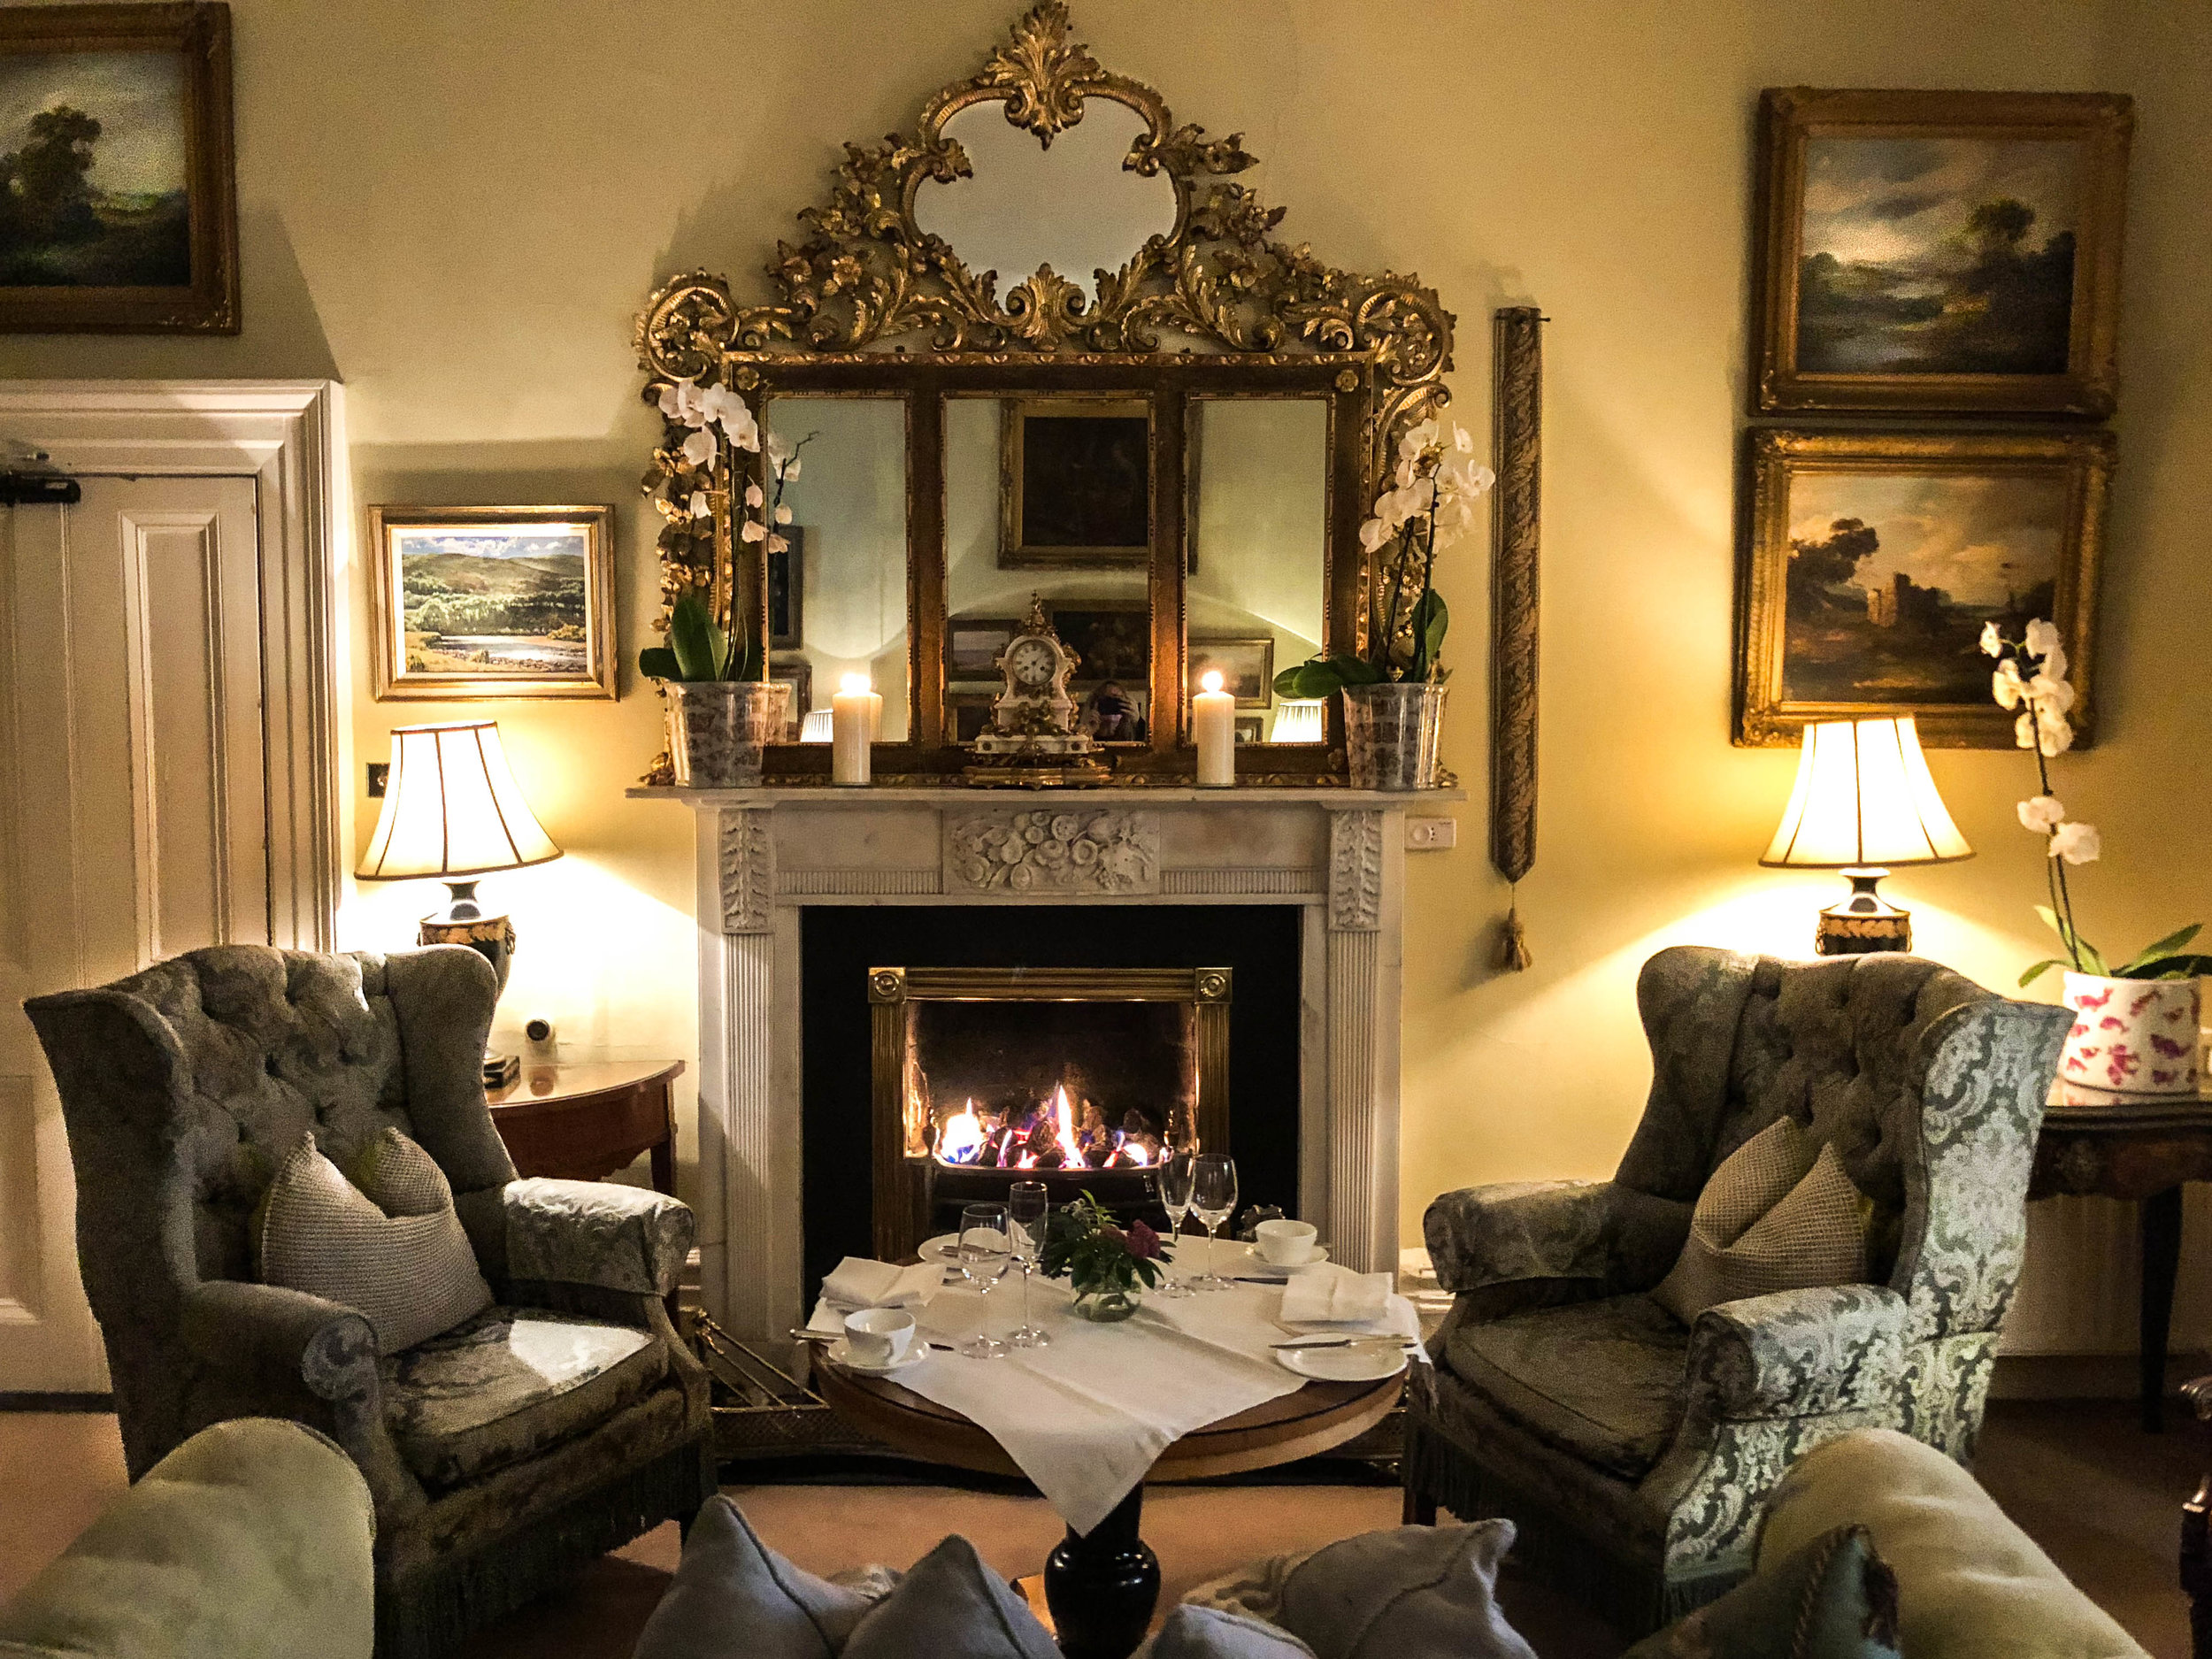 Afternoon Tea - Reserve a seat in the main house parlor for a relaxed and gracious afternoon tea in front of a warming fire. The perfect place to read a book and enjoy the elegant surroundings.